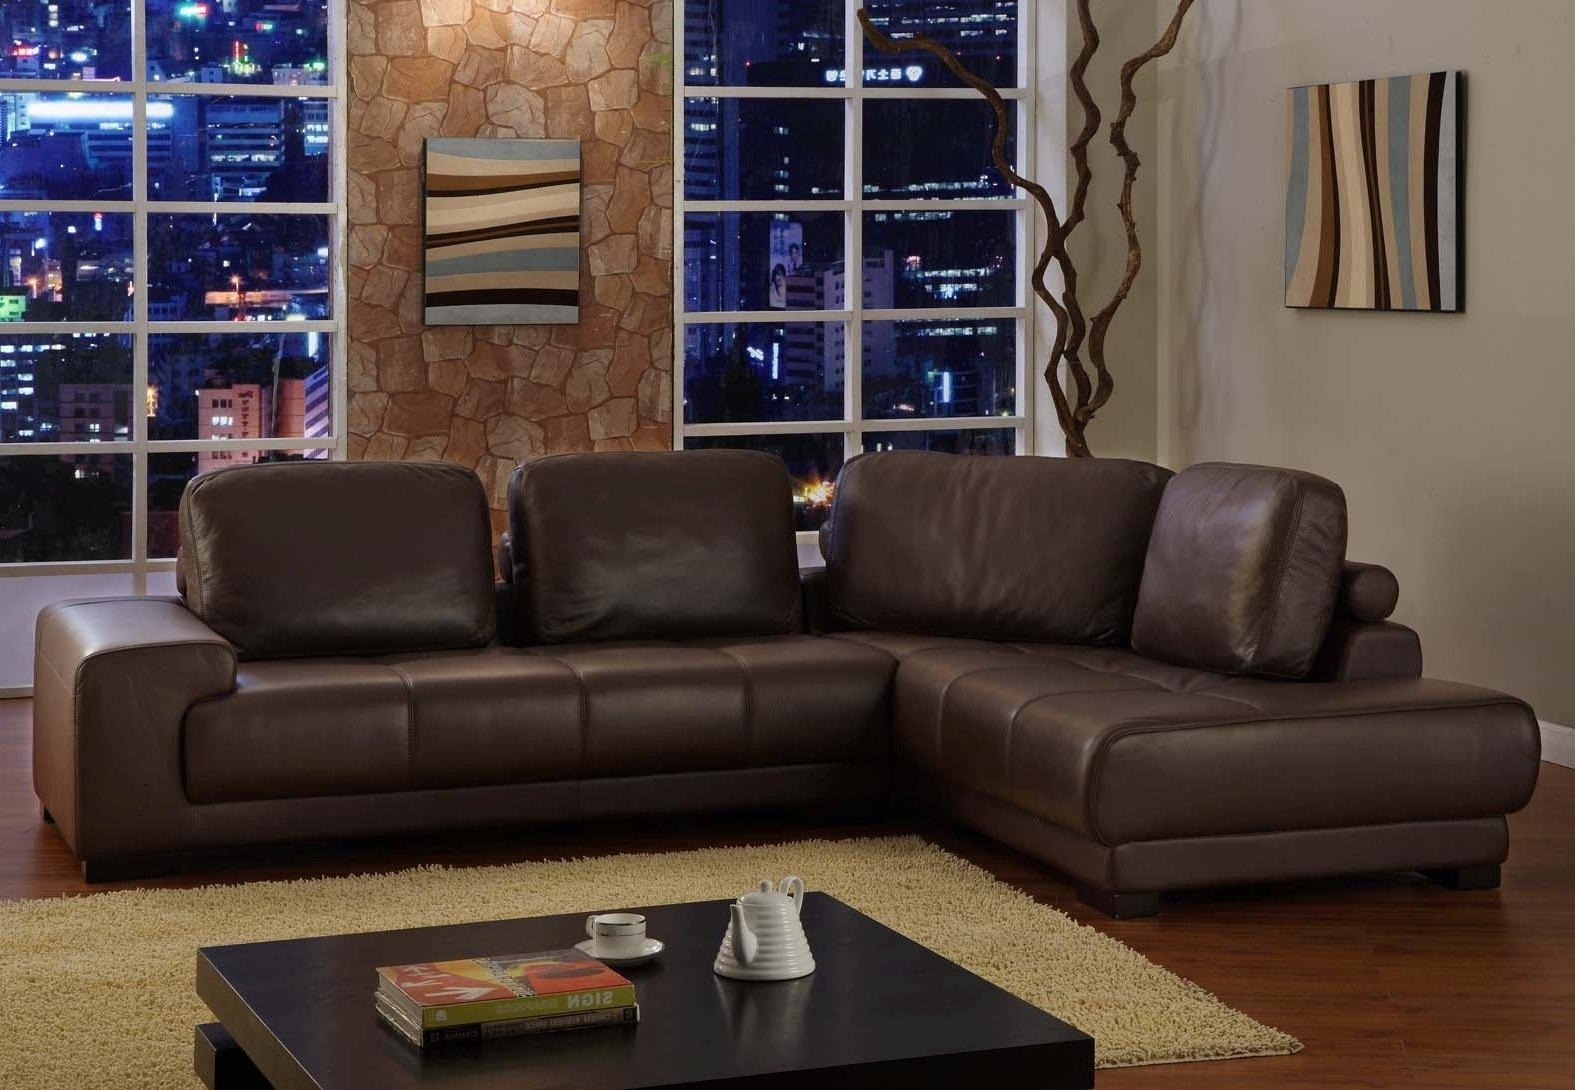 Elegant Sectional Sofa Clearance 27 On Sofas And Couches Ideas With within Clearance Sectional Sofas (Image 6 of 15)